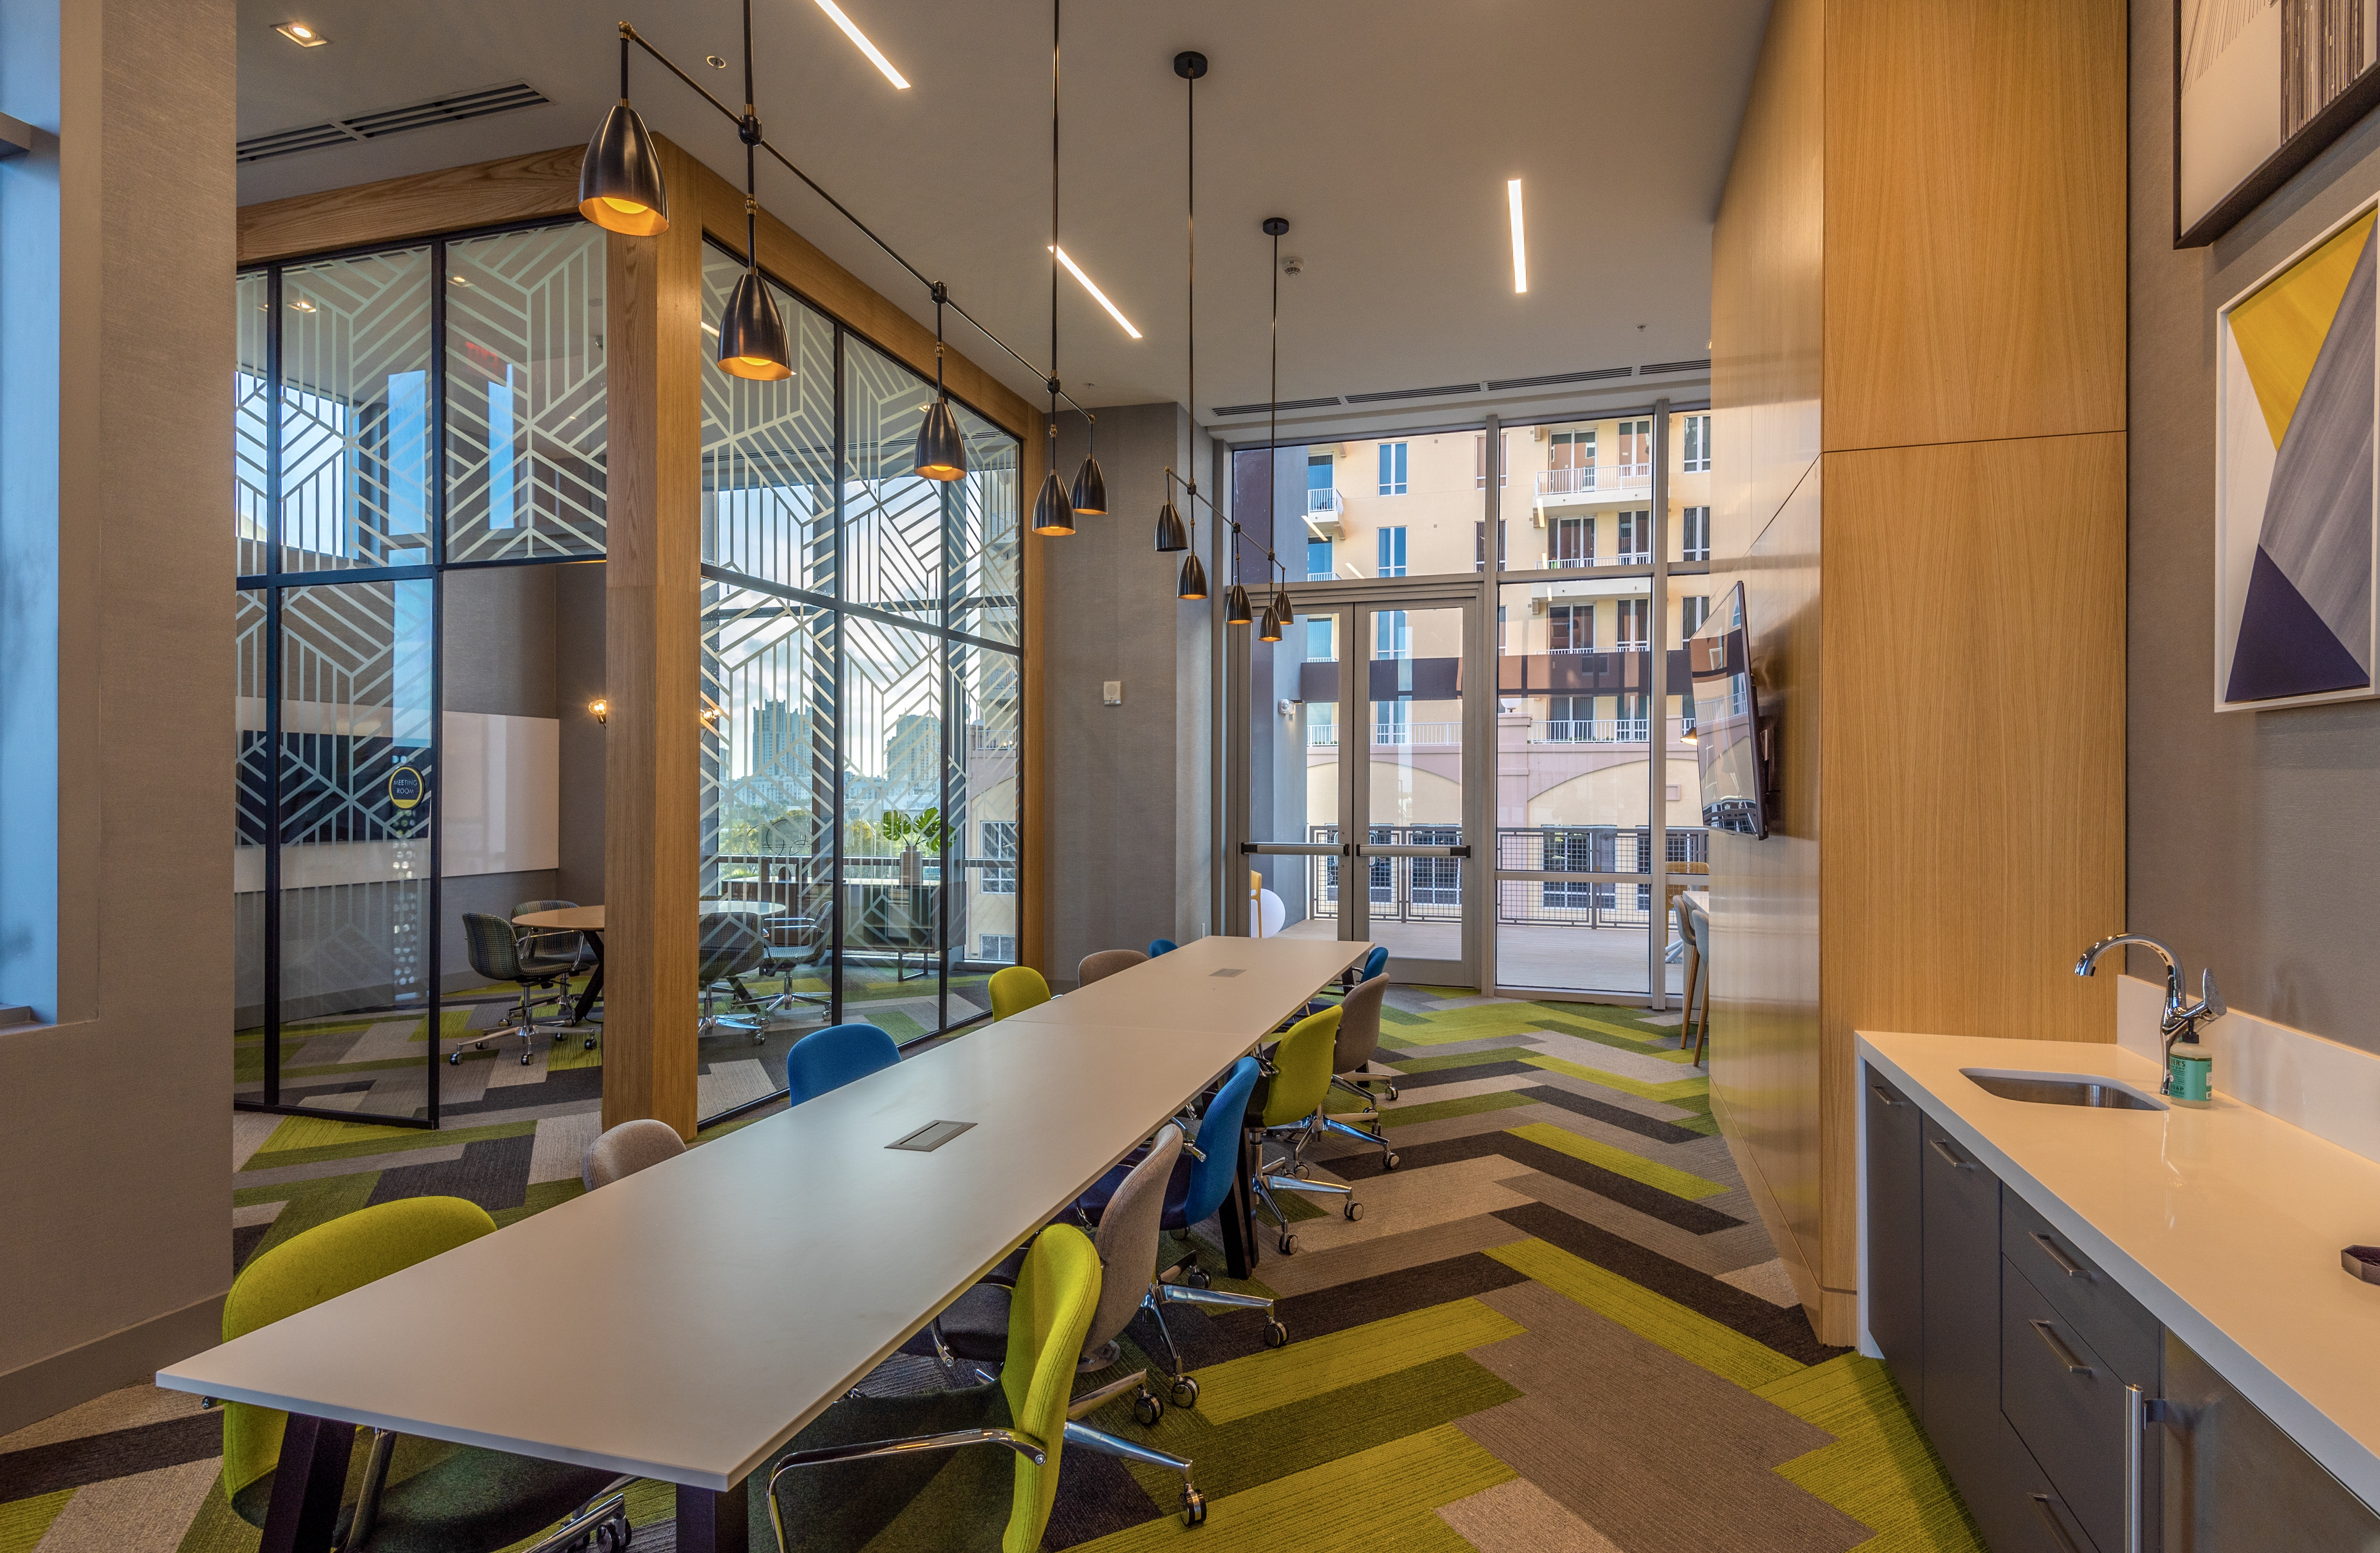 Modern apartment common meeting space with long conference table, chairs, a sink, and separate private office room with glass walls.